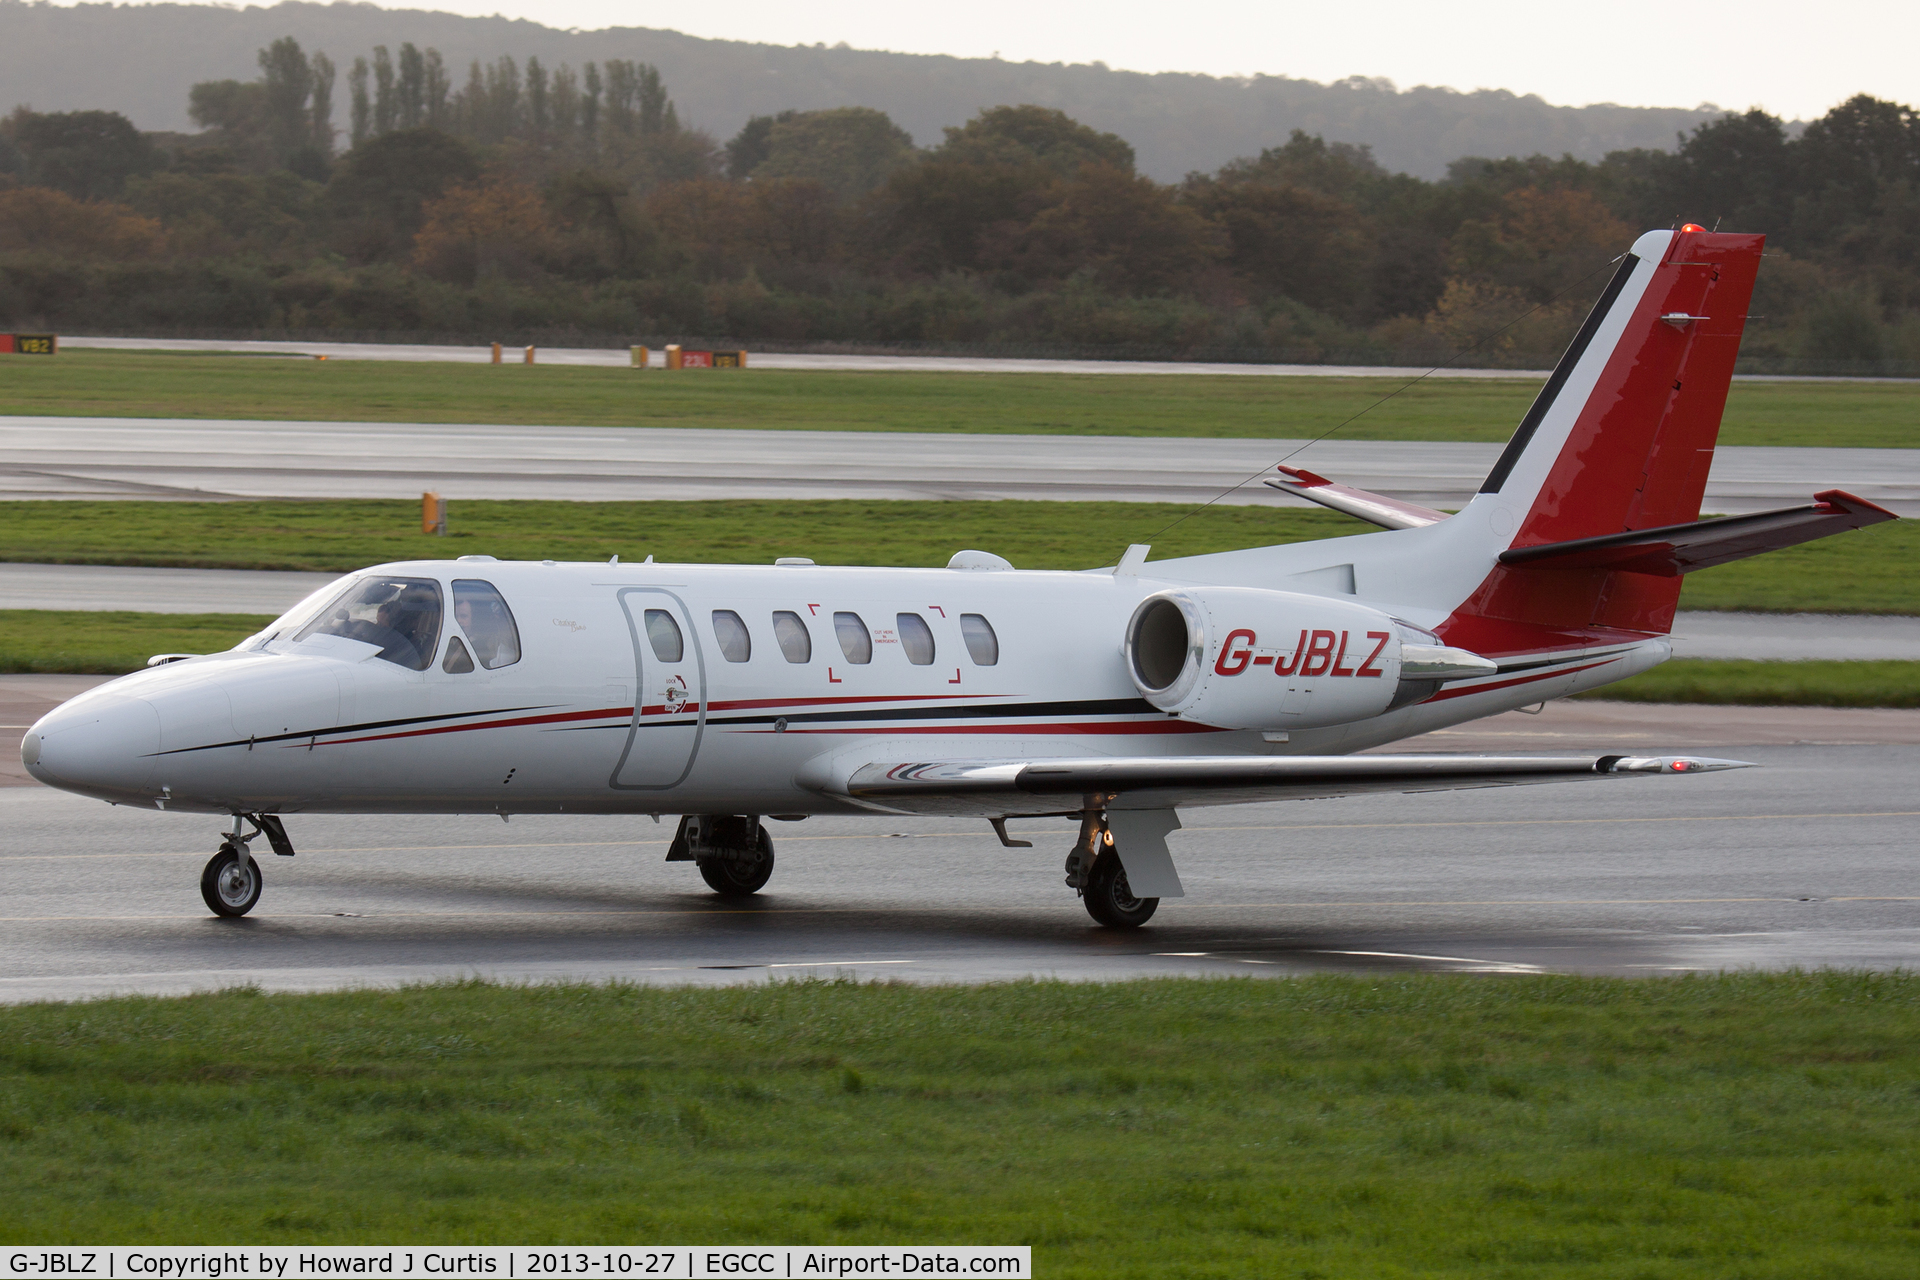 G-JBLZ, 2002 Cessna 550 Citation Bravo C/N 550-1018, Corporate.